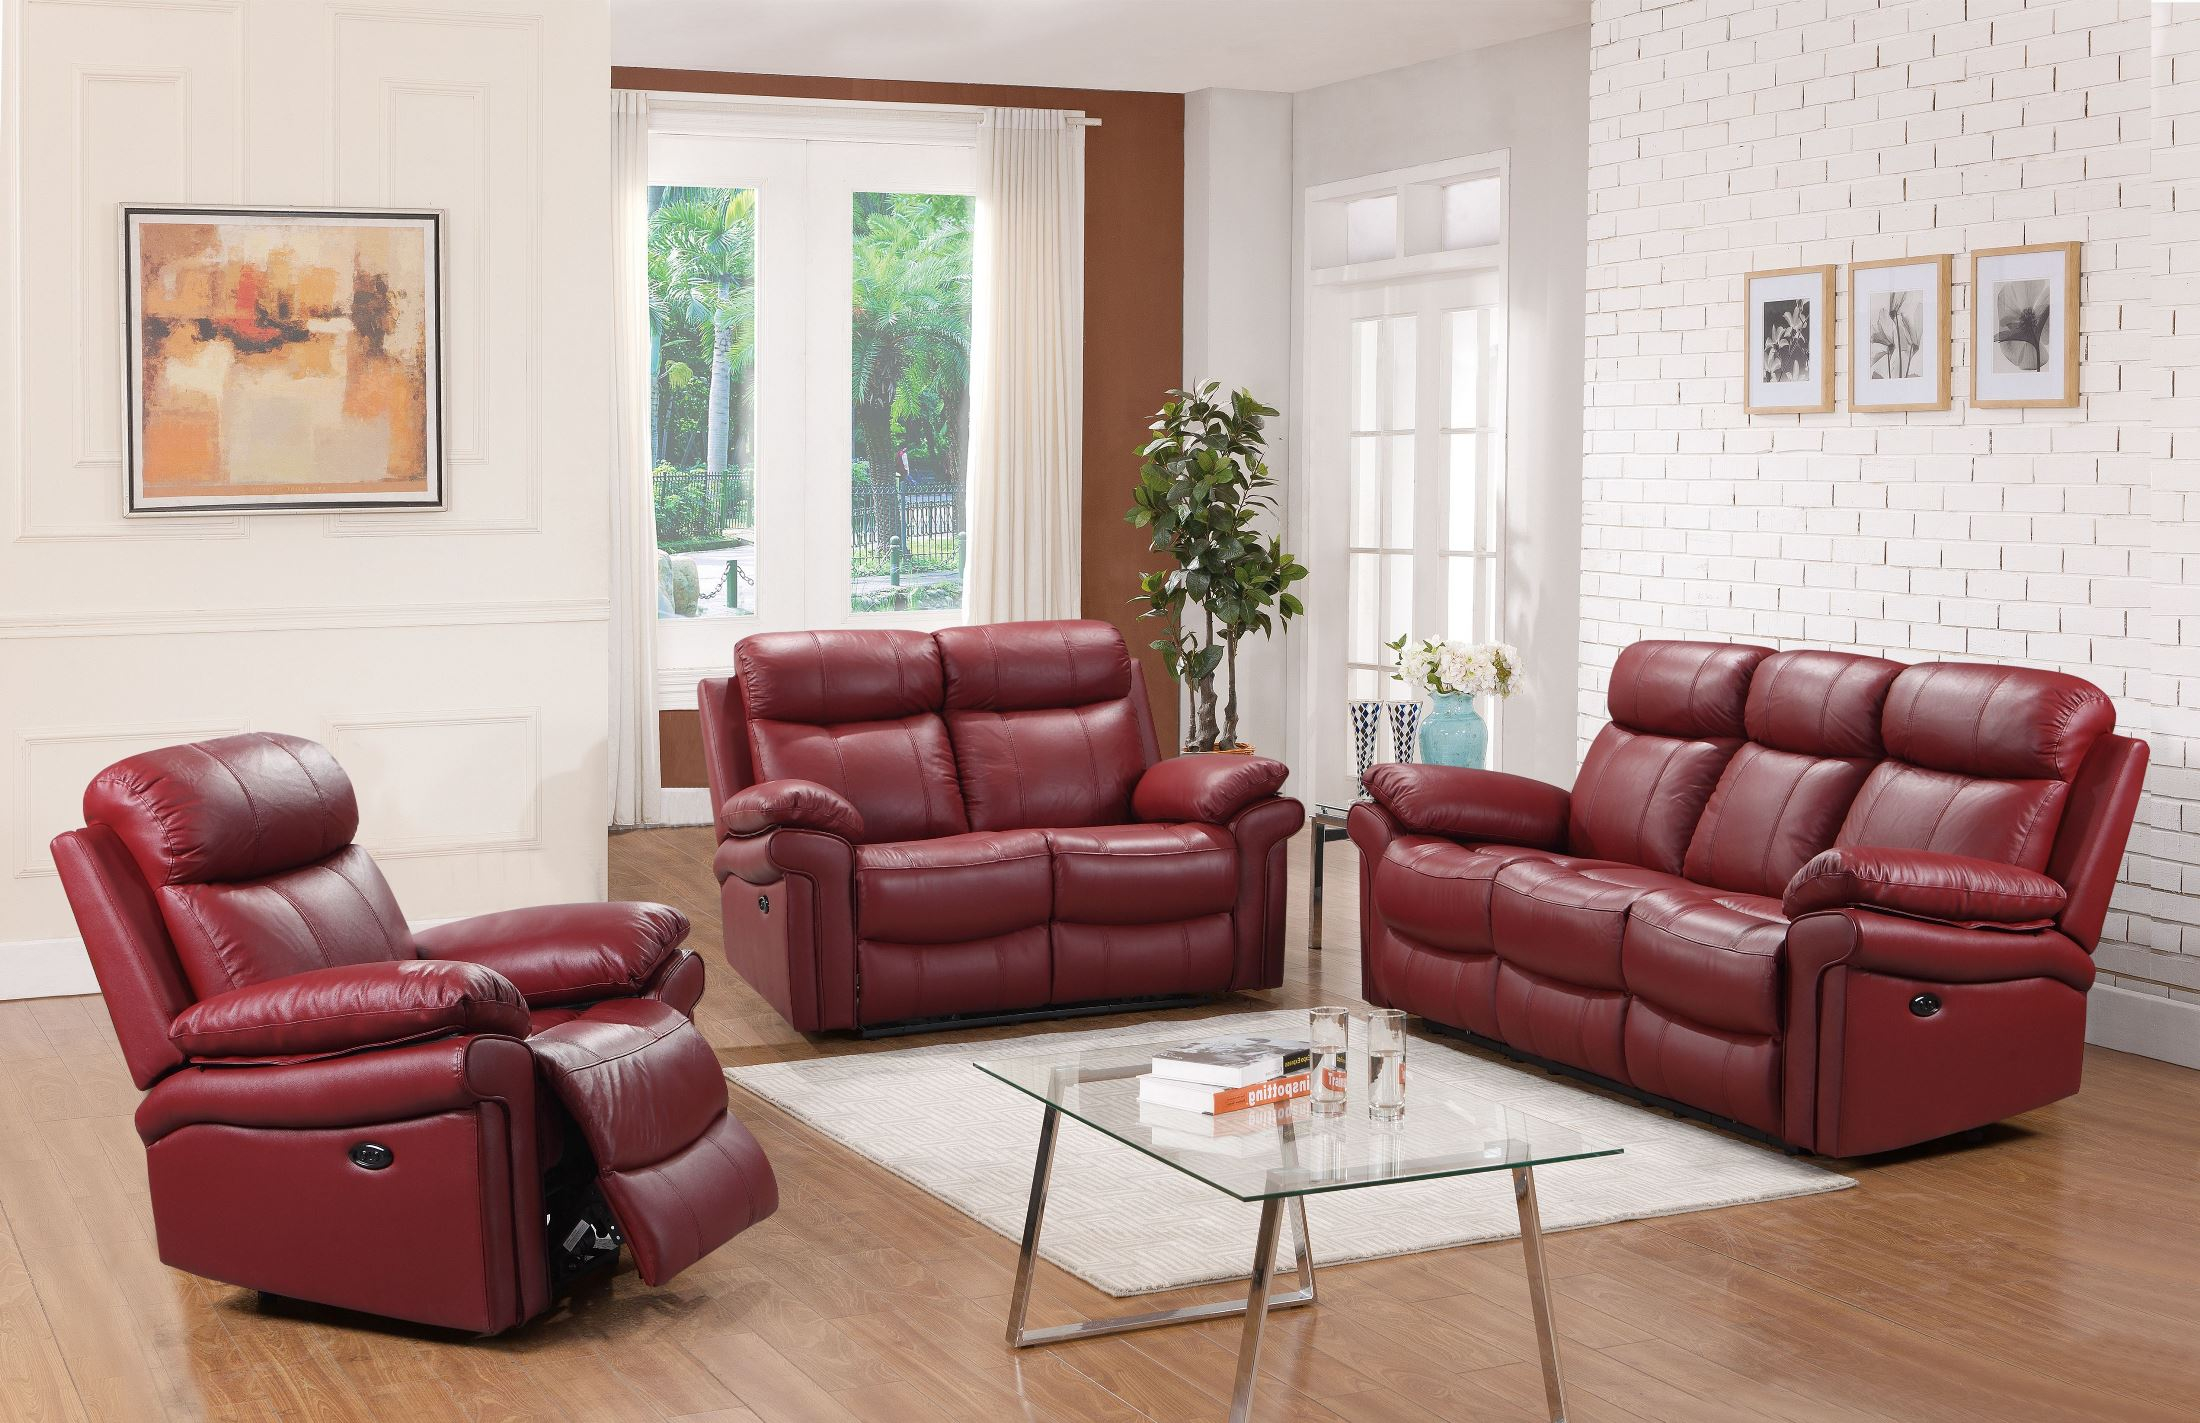 Shae Joplin Red Leather Power Reclining Living Room Set within 13 Awesome Designs of How to Improve Power Reclining Living Room Set